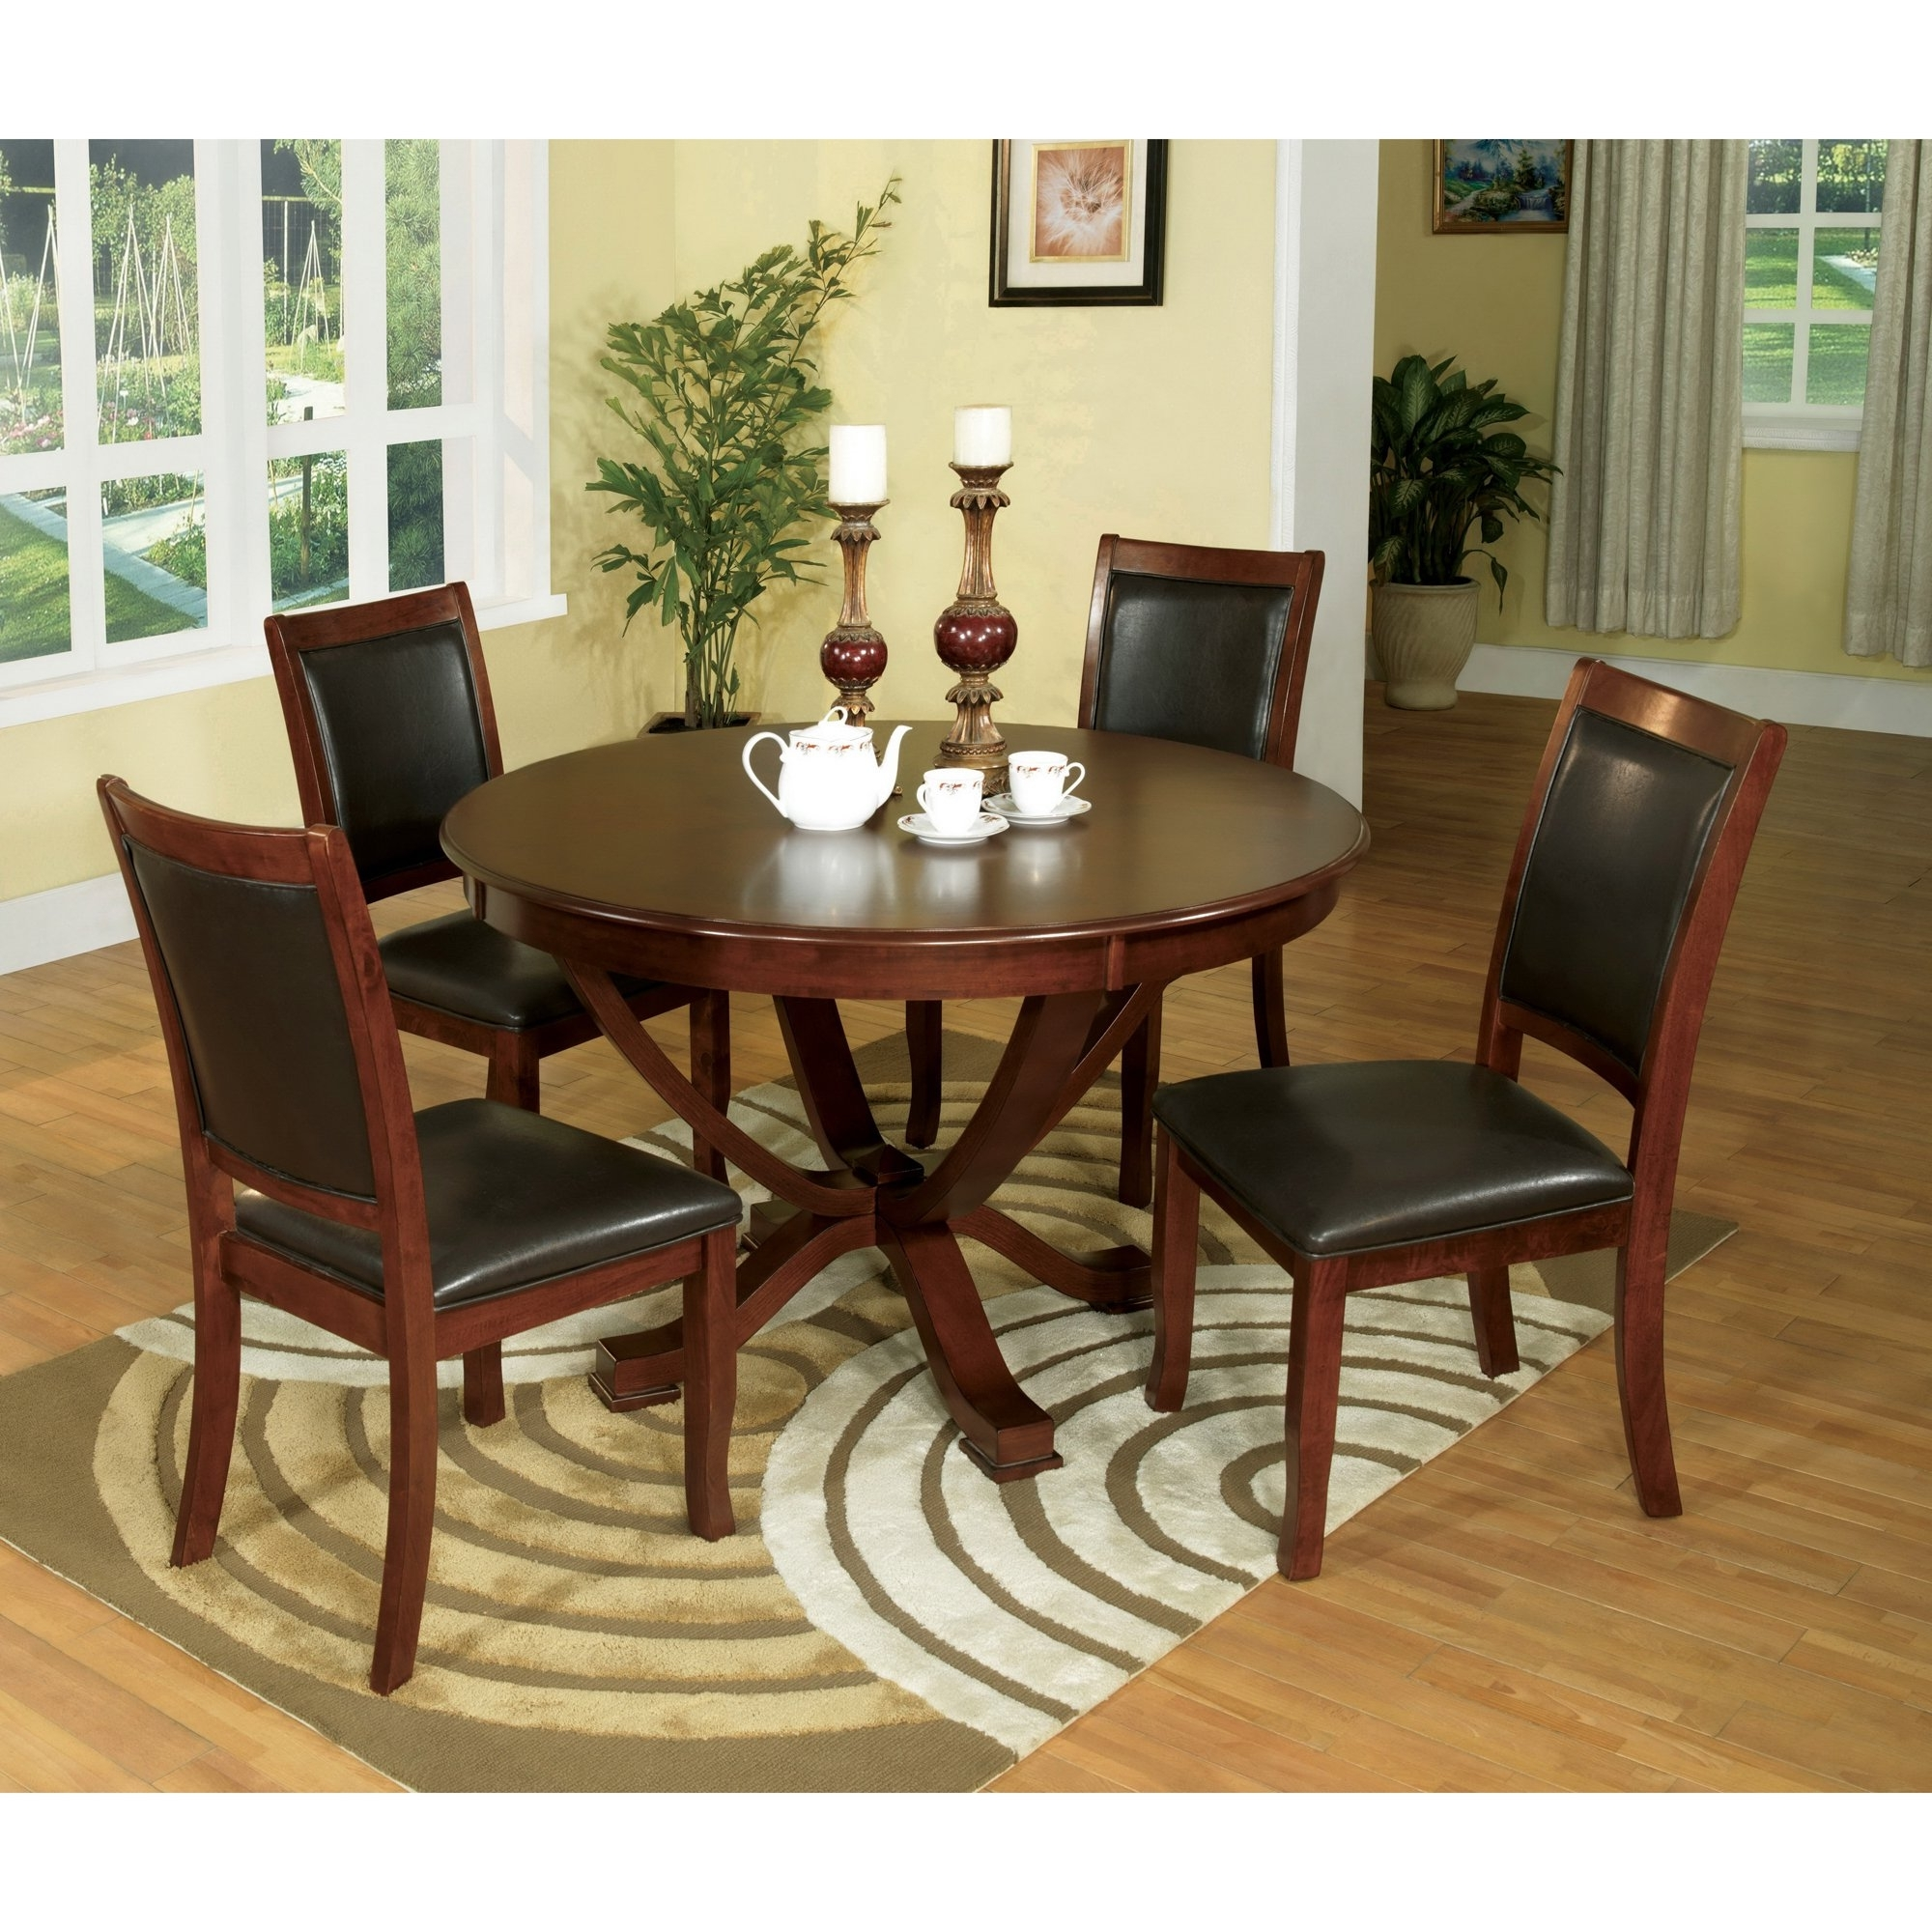 Kirsten 5 Piece Dining Sets intended for Current Shop Furniture Of America Kristen 5-Piece Brown Cherry Dining Set